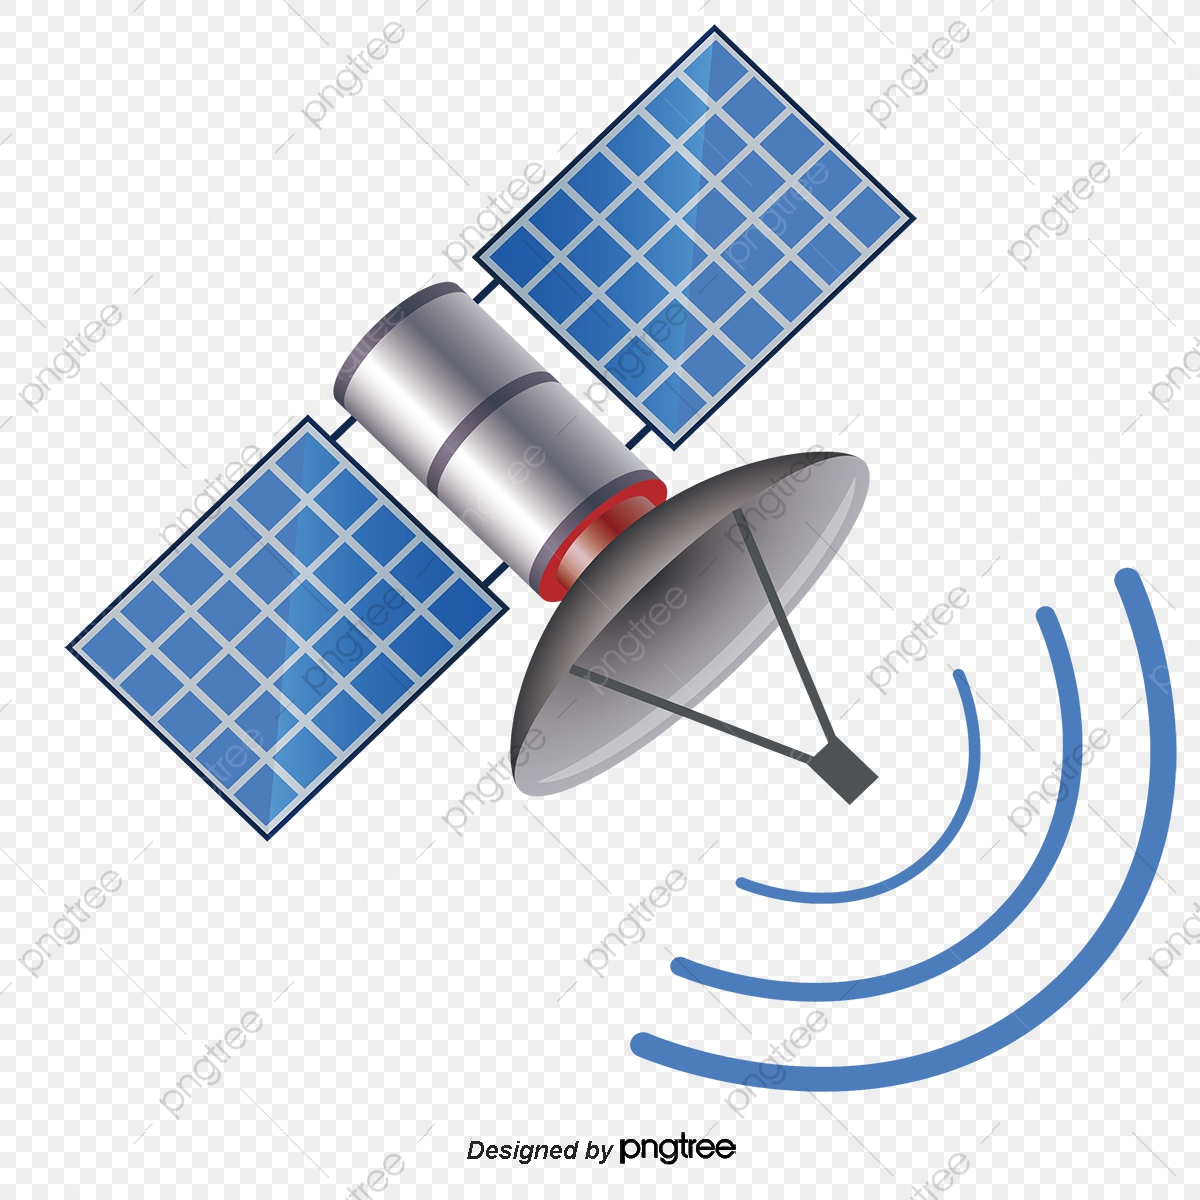 Blue Satellite, Blue Vector, Blue, Delayering PNG and Vector.